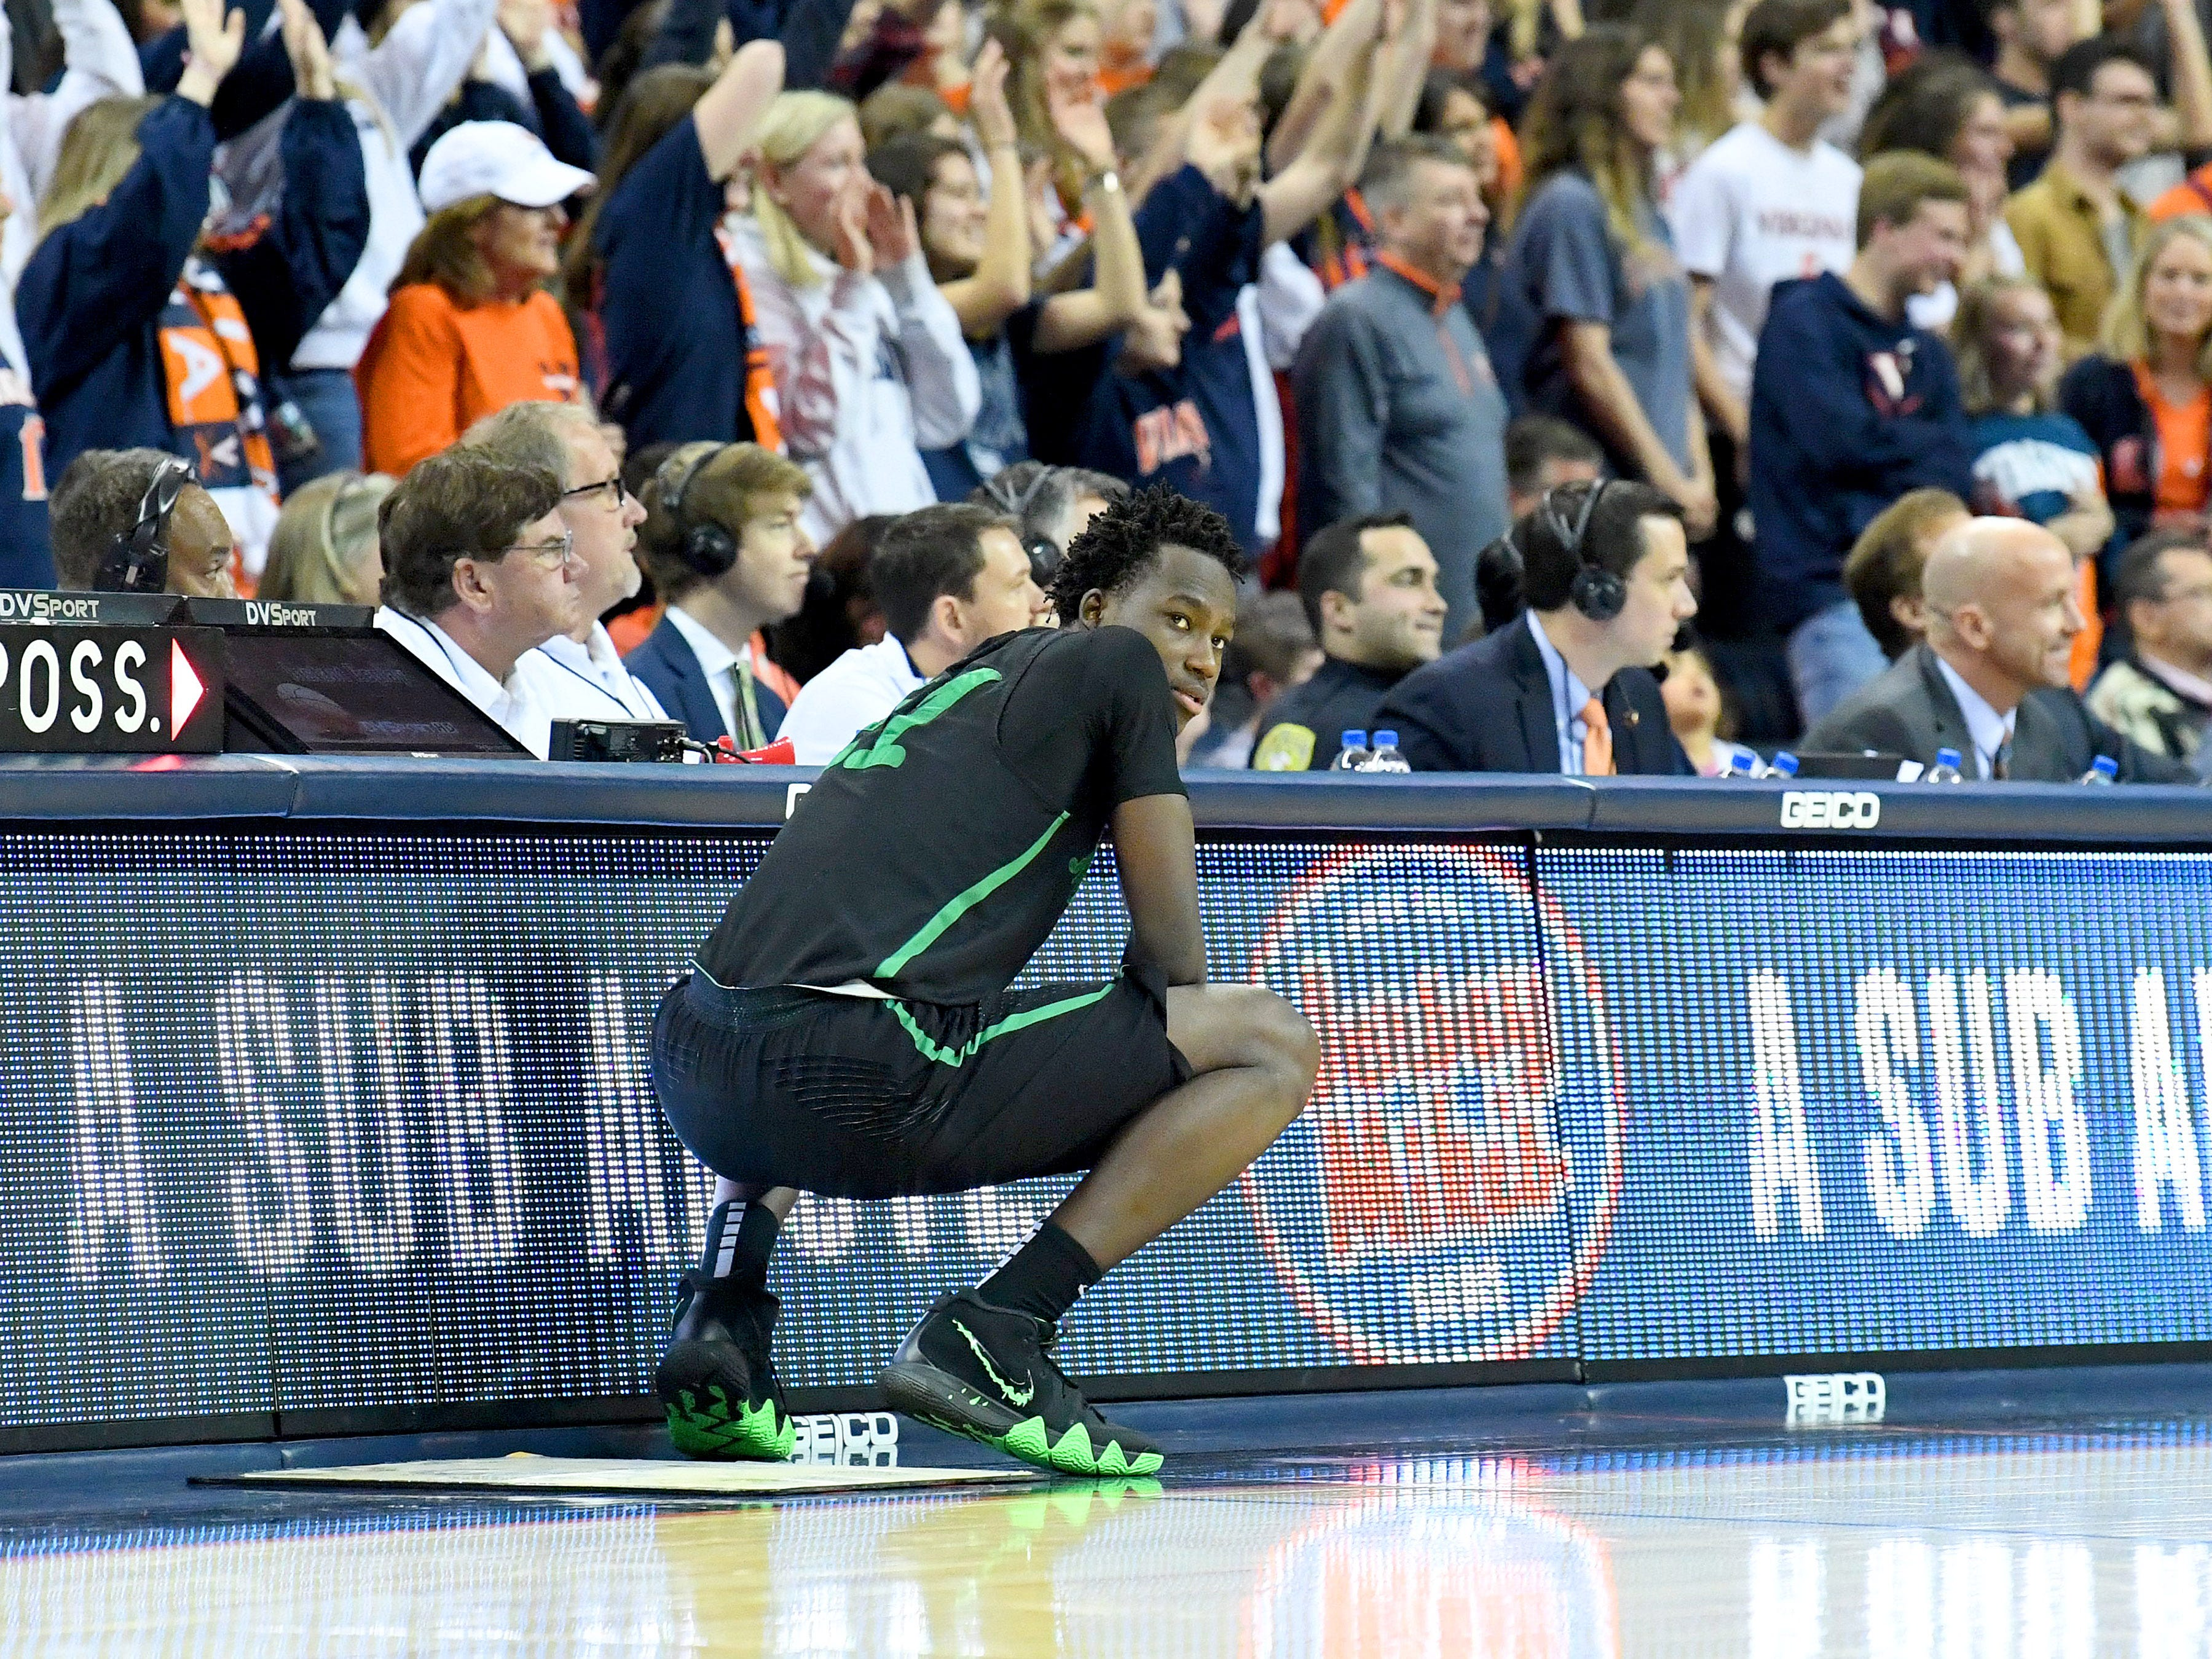 Marshall's Darius George, former R.E. Lee star, waits to go into the game during their game against University of Virginia, played at the John Paul Jones Arena on Dec. 31, 2016.